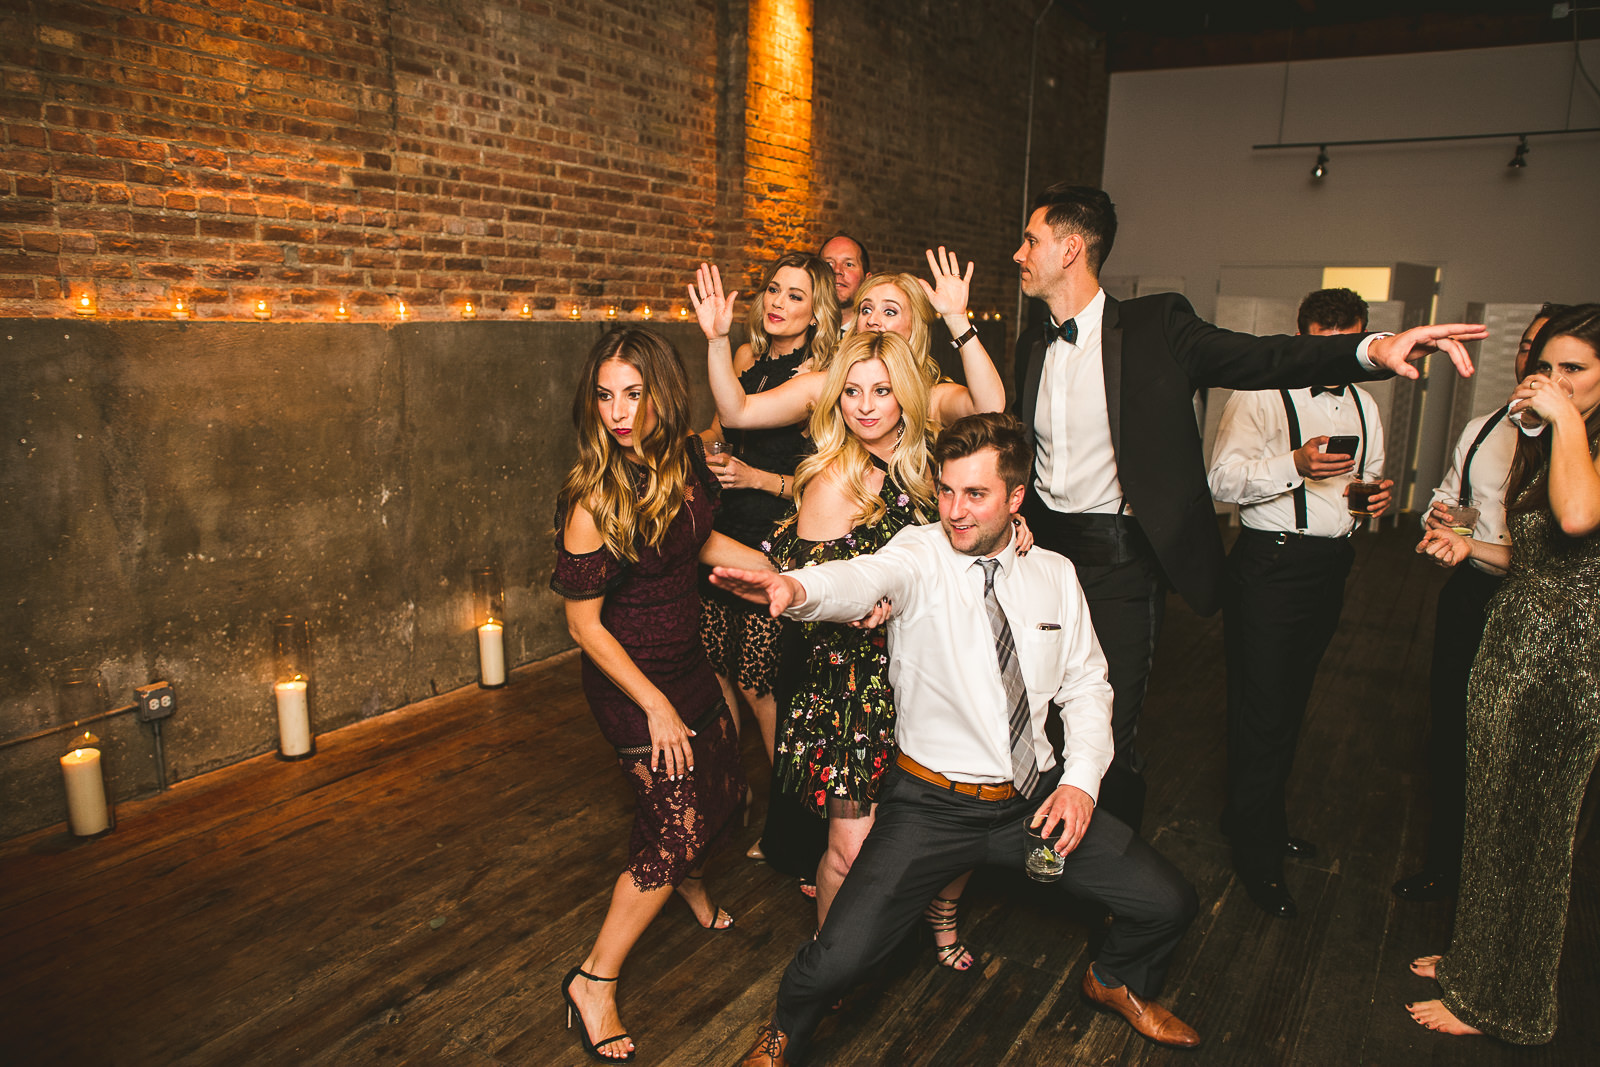 76 gallery 1028 wedding inspiration - Chicago Wedding Photography at Gallery 1028 // Courtnie + David